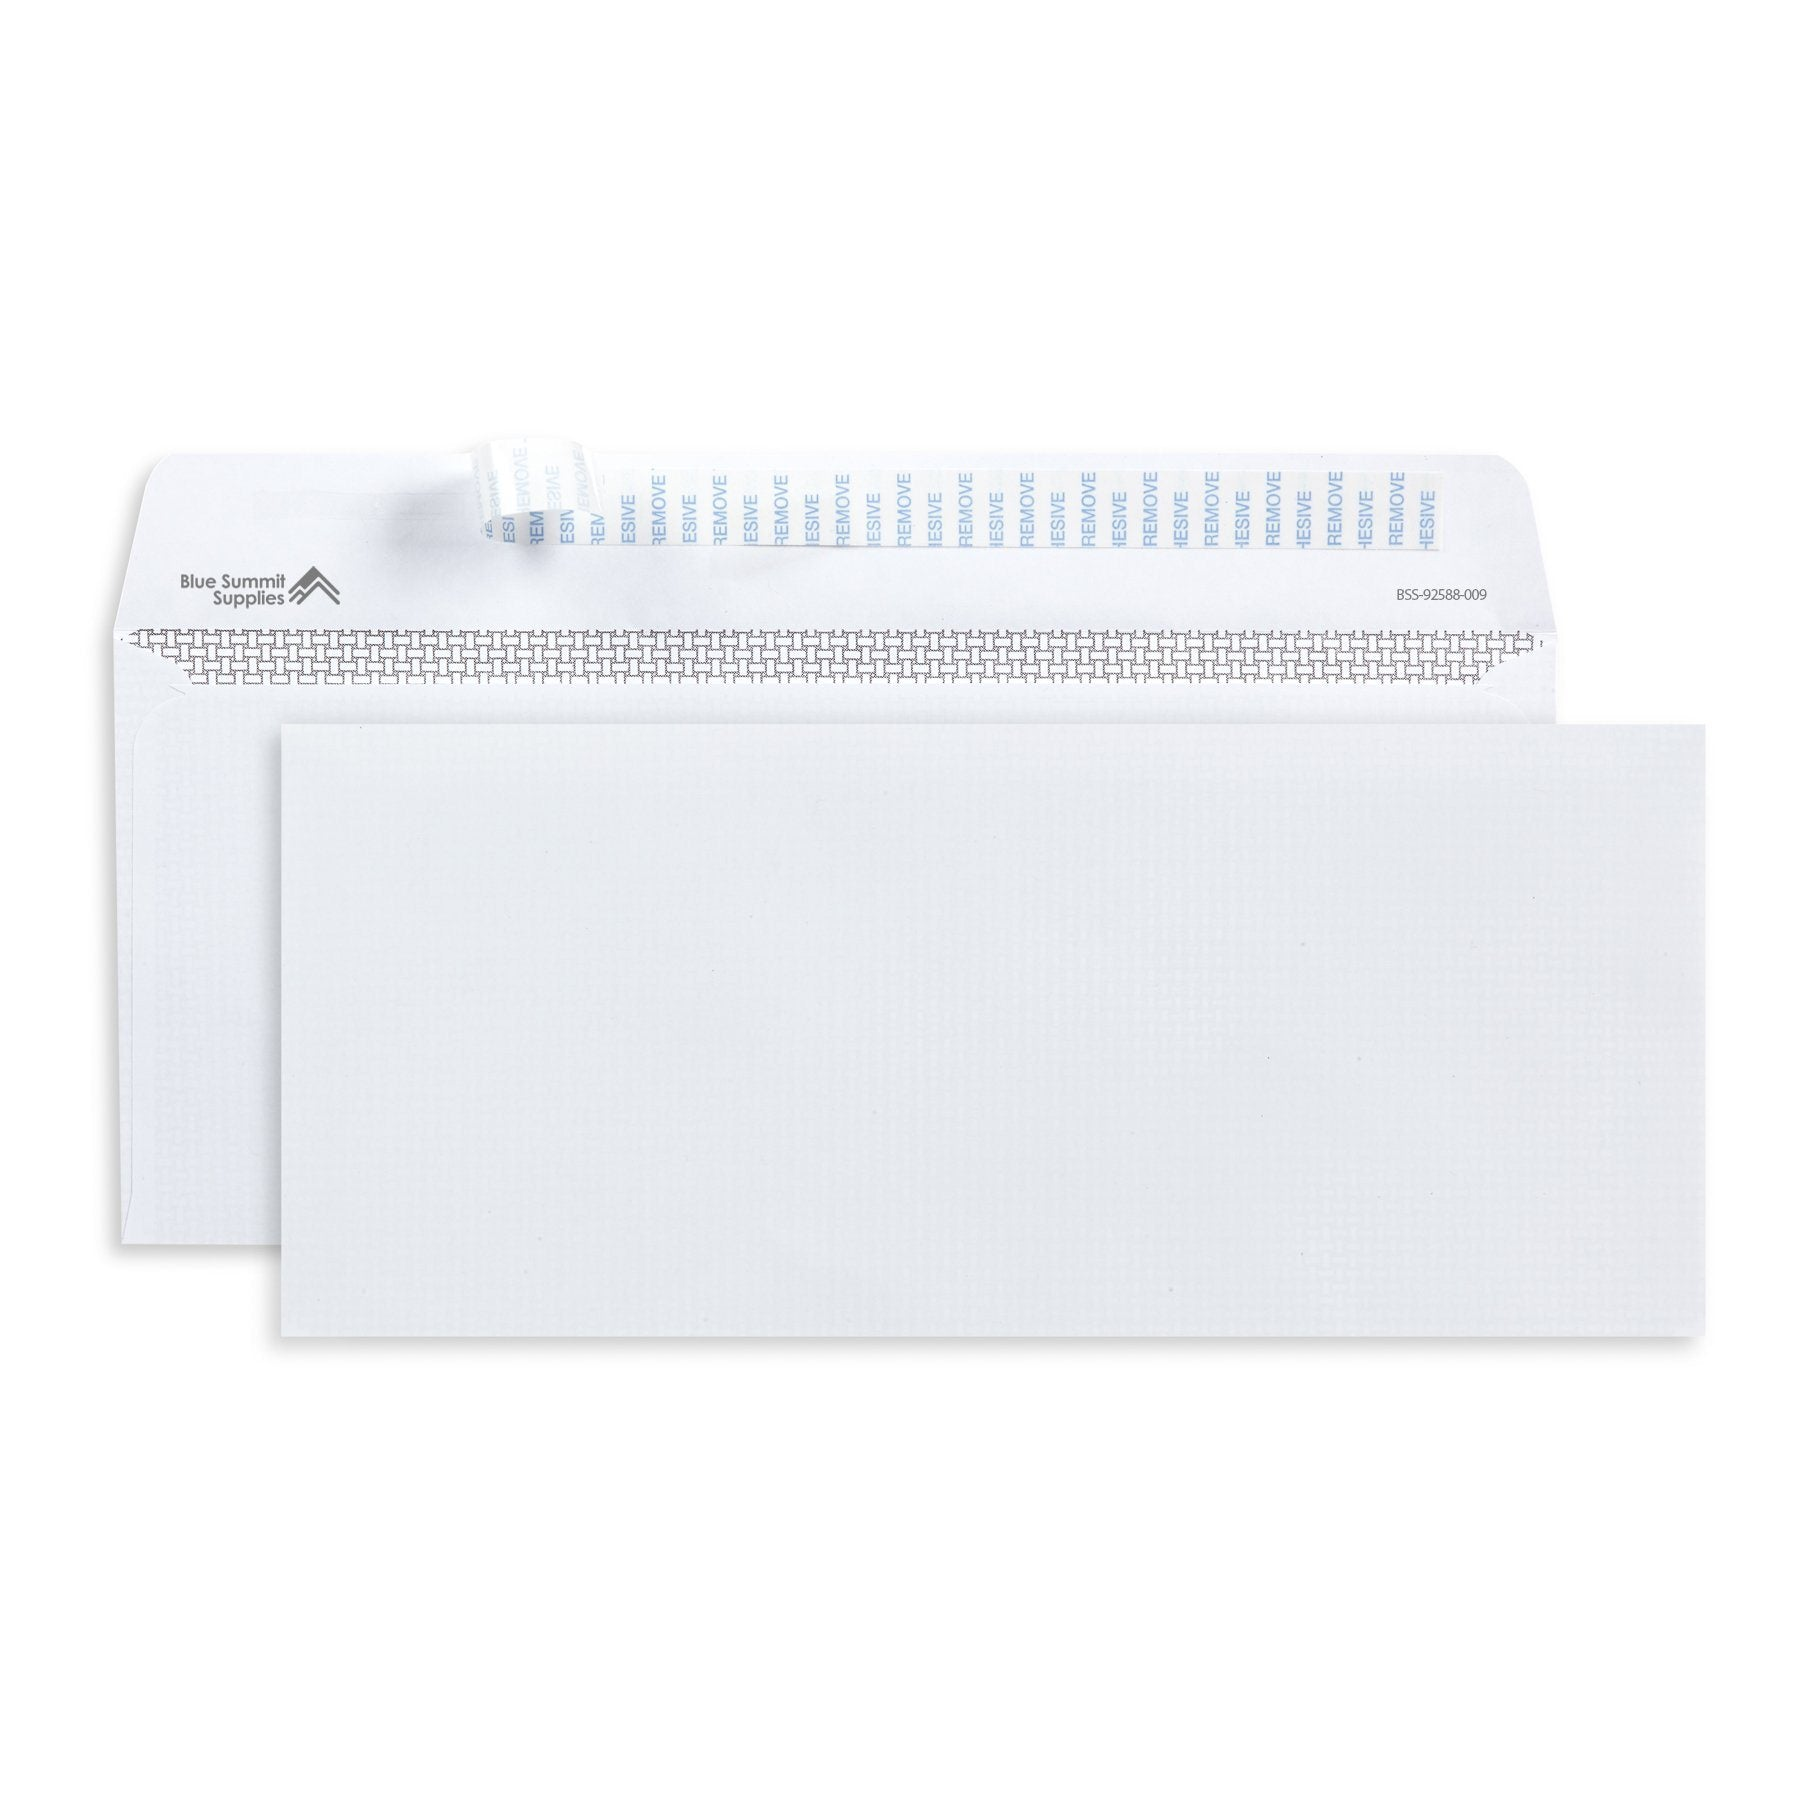 Security 100 No 10 Self Seal Security Envelopes Designed For Secure Mailing